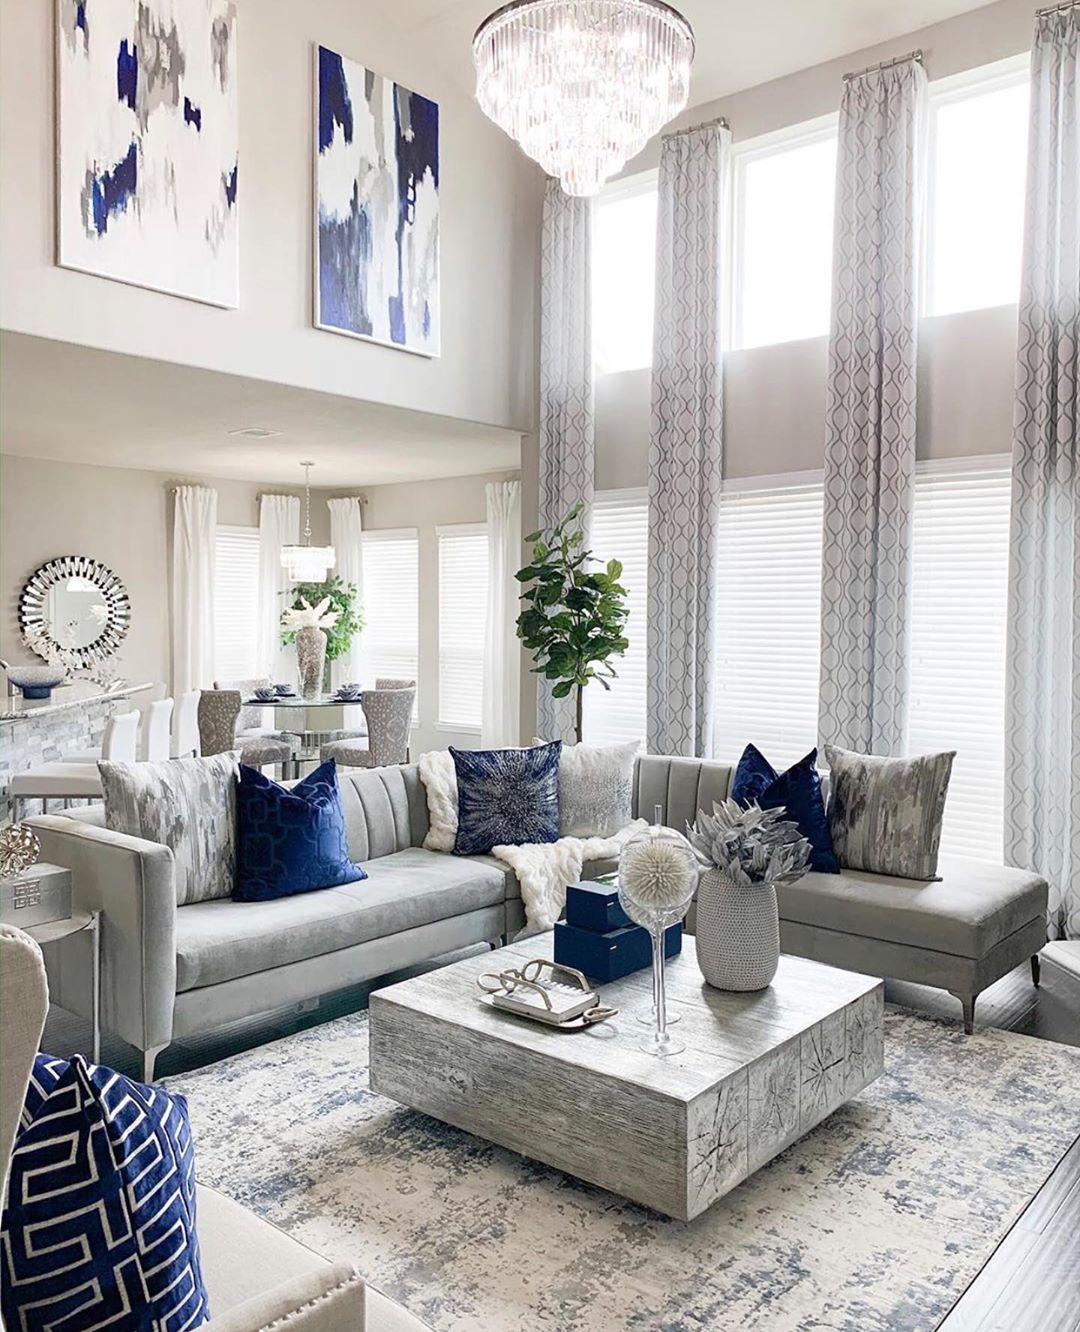 2 364 Likes 41 Comments Chachou Interior Design Decor The Welcoming Home On Instagram Blue Living Room Accents